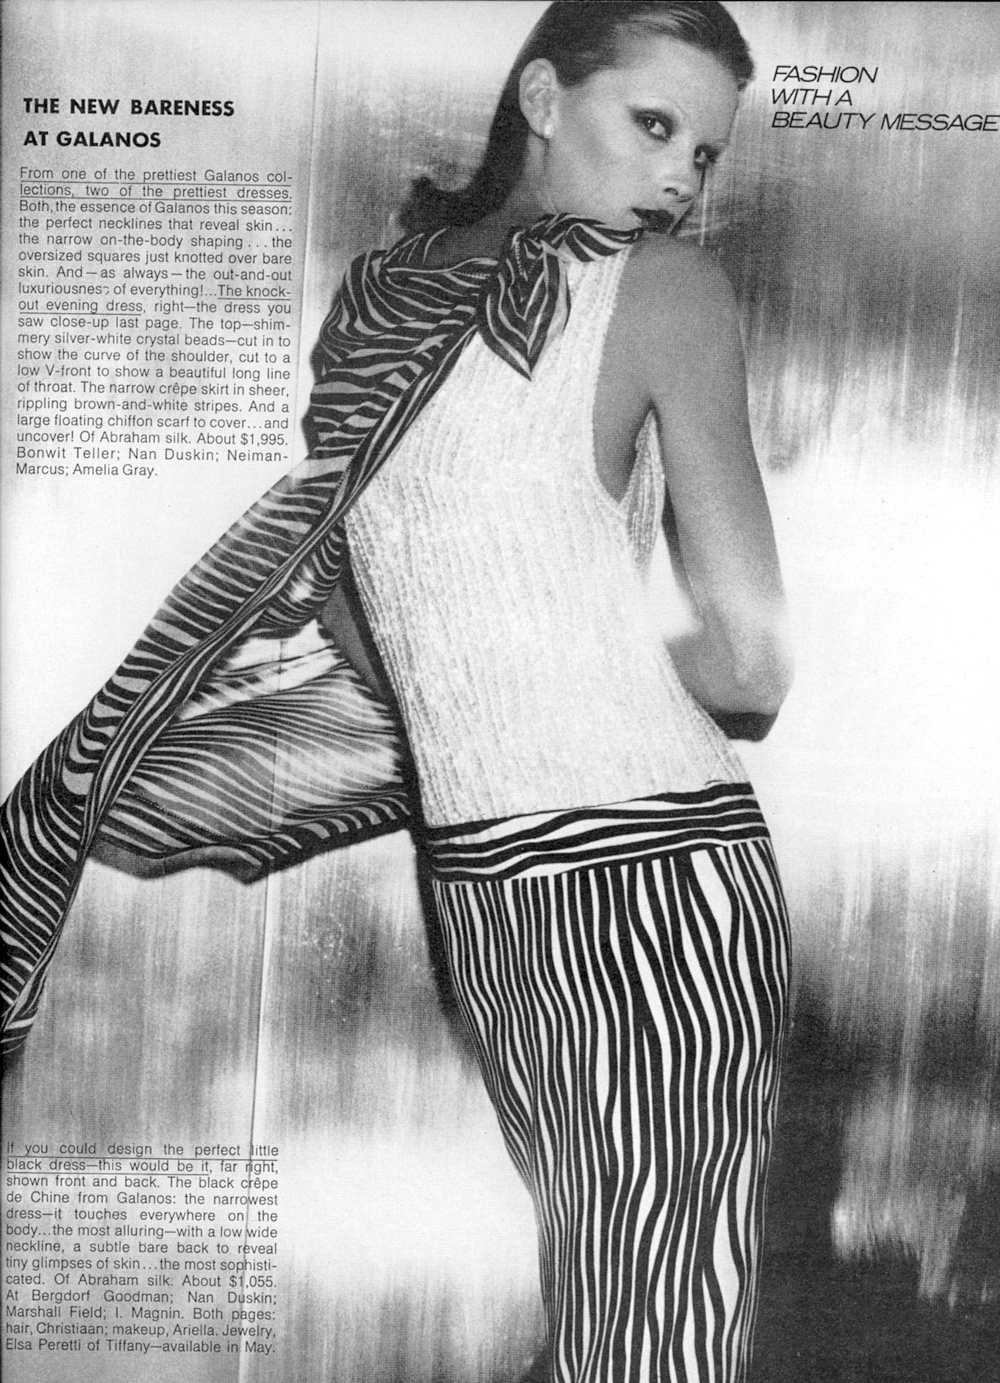 Outfit idea from Vogue 1975 / 1970s style / via fashioned by love british fashion blog